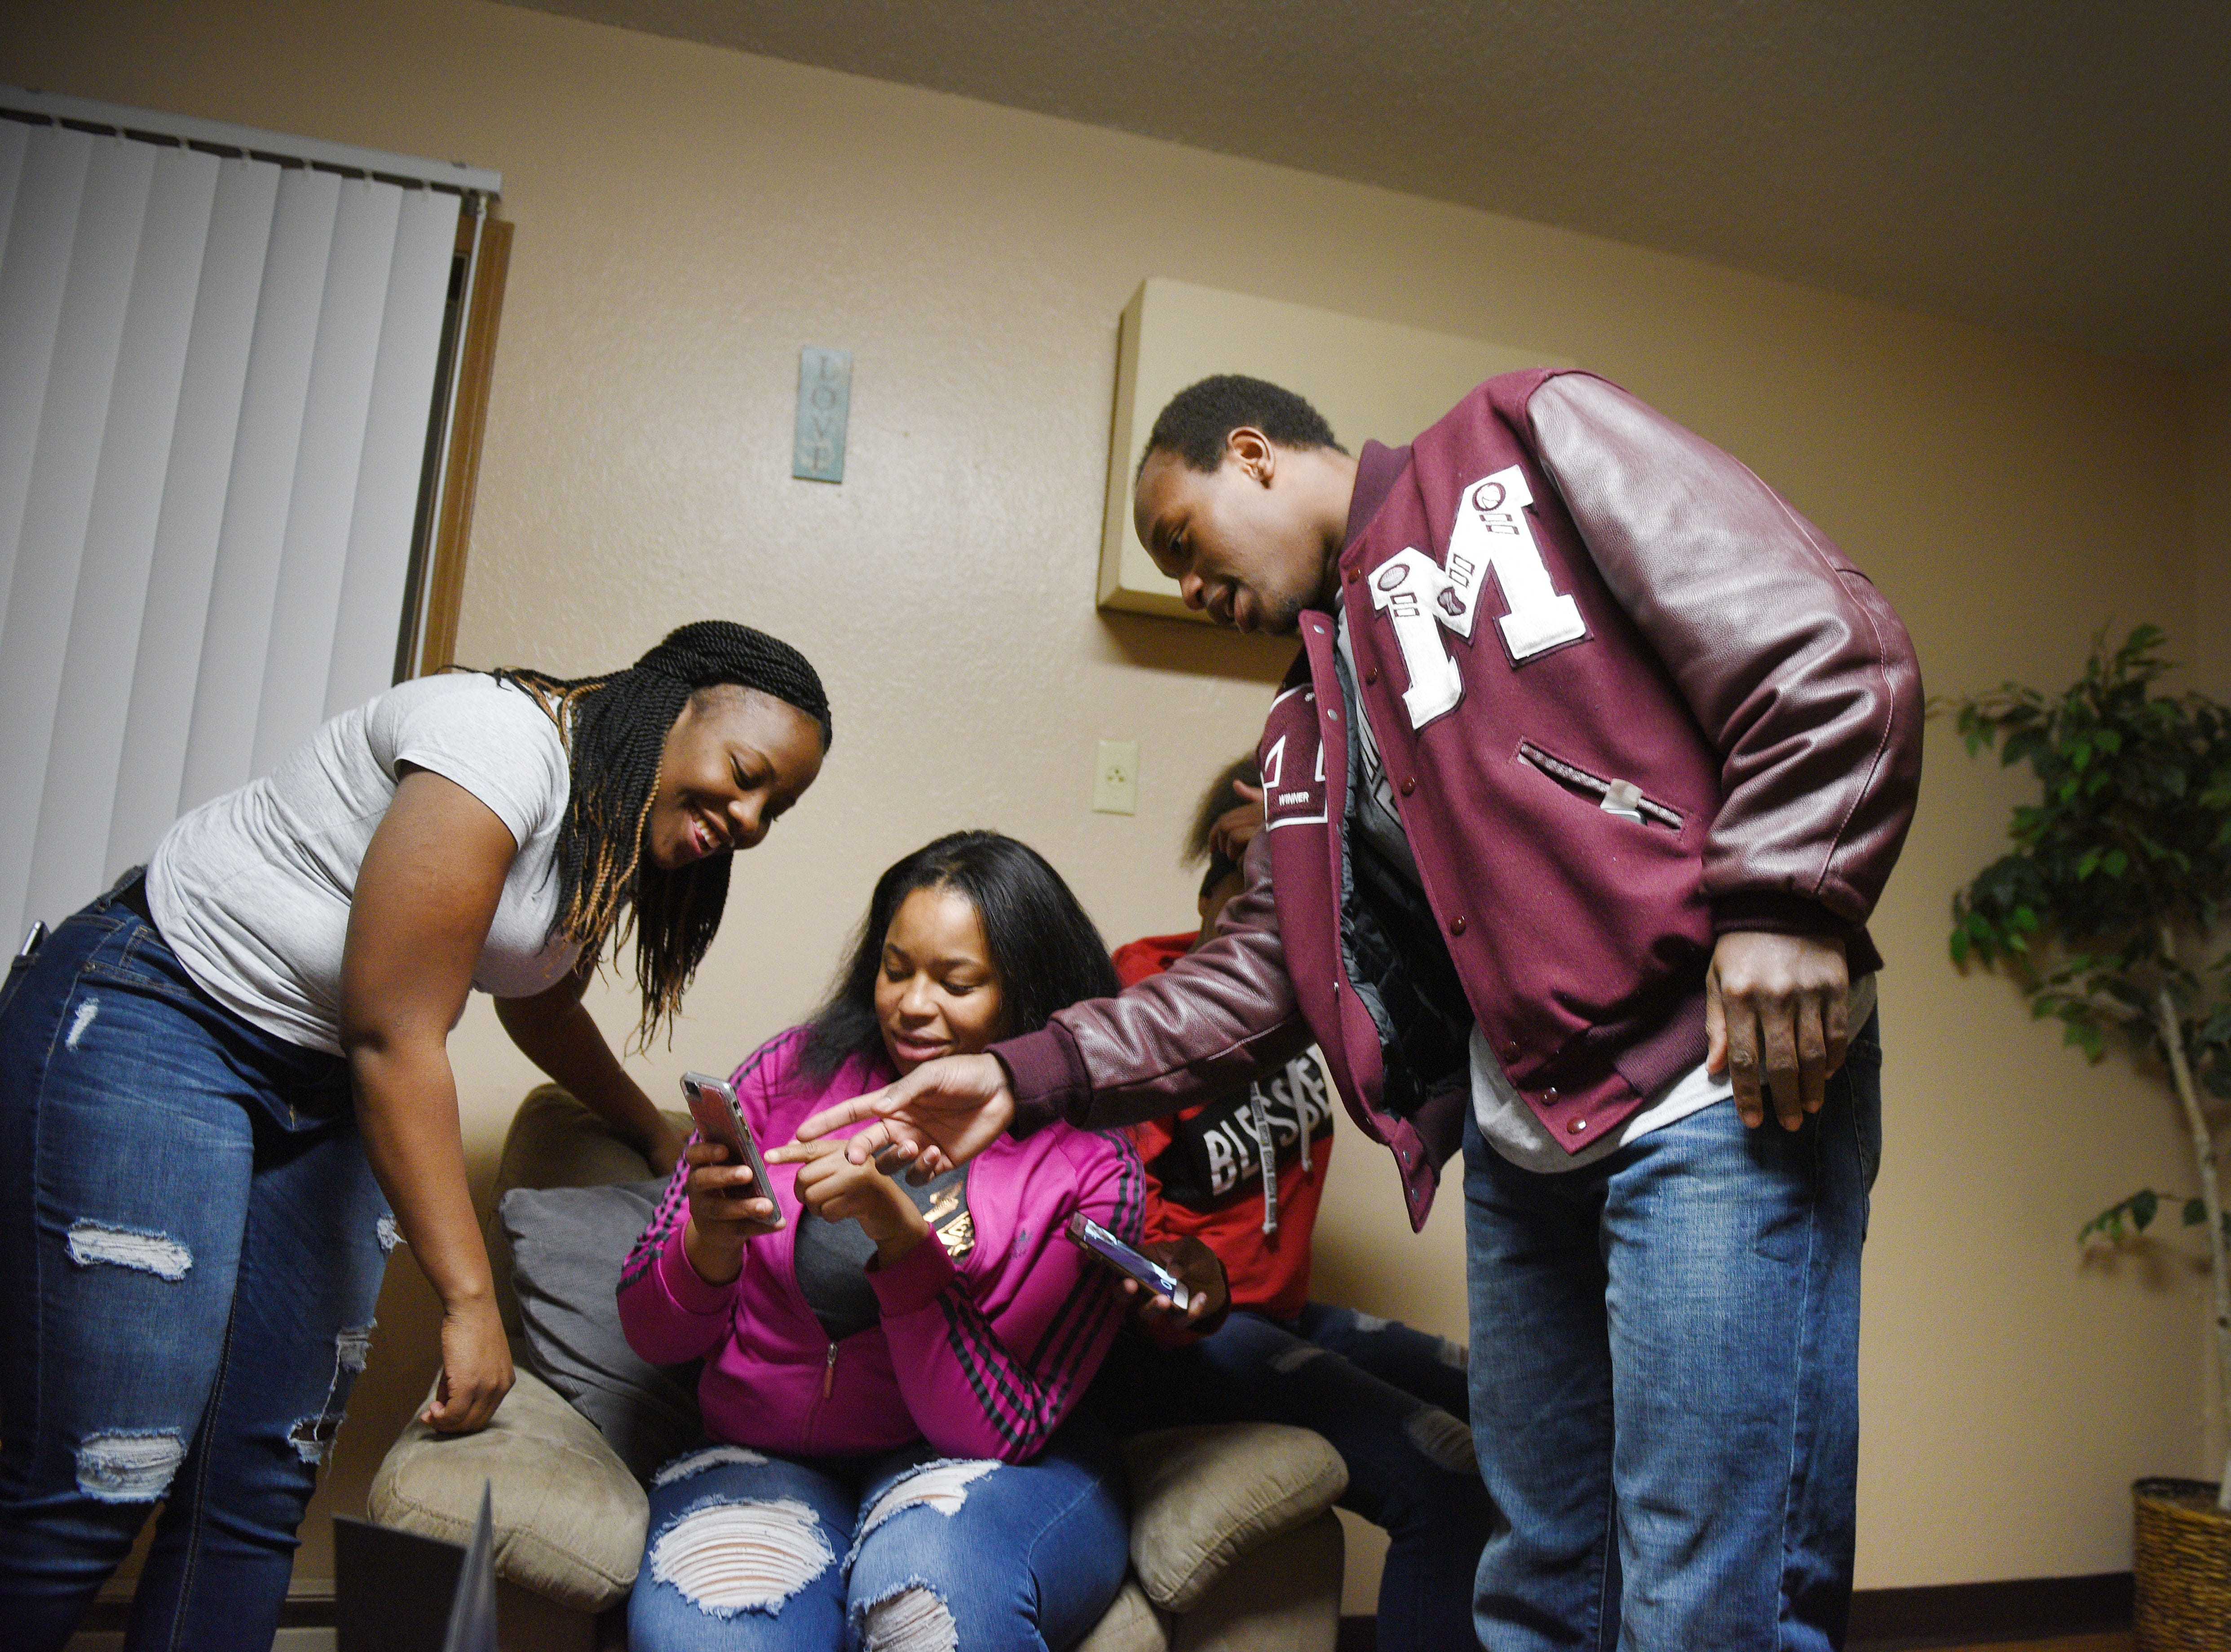 Ka'Sandra Cauley, from left, Iesha Meredith, A'Meria Meredith and Doyle Brown look at old photos of Doyle at Iesha's home Thursday, Jan. 9, in Madison. Doyle Brown moved to Madison from Louisiana with his sister Iesha in 2015.